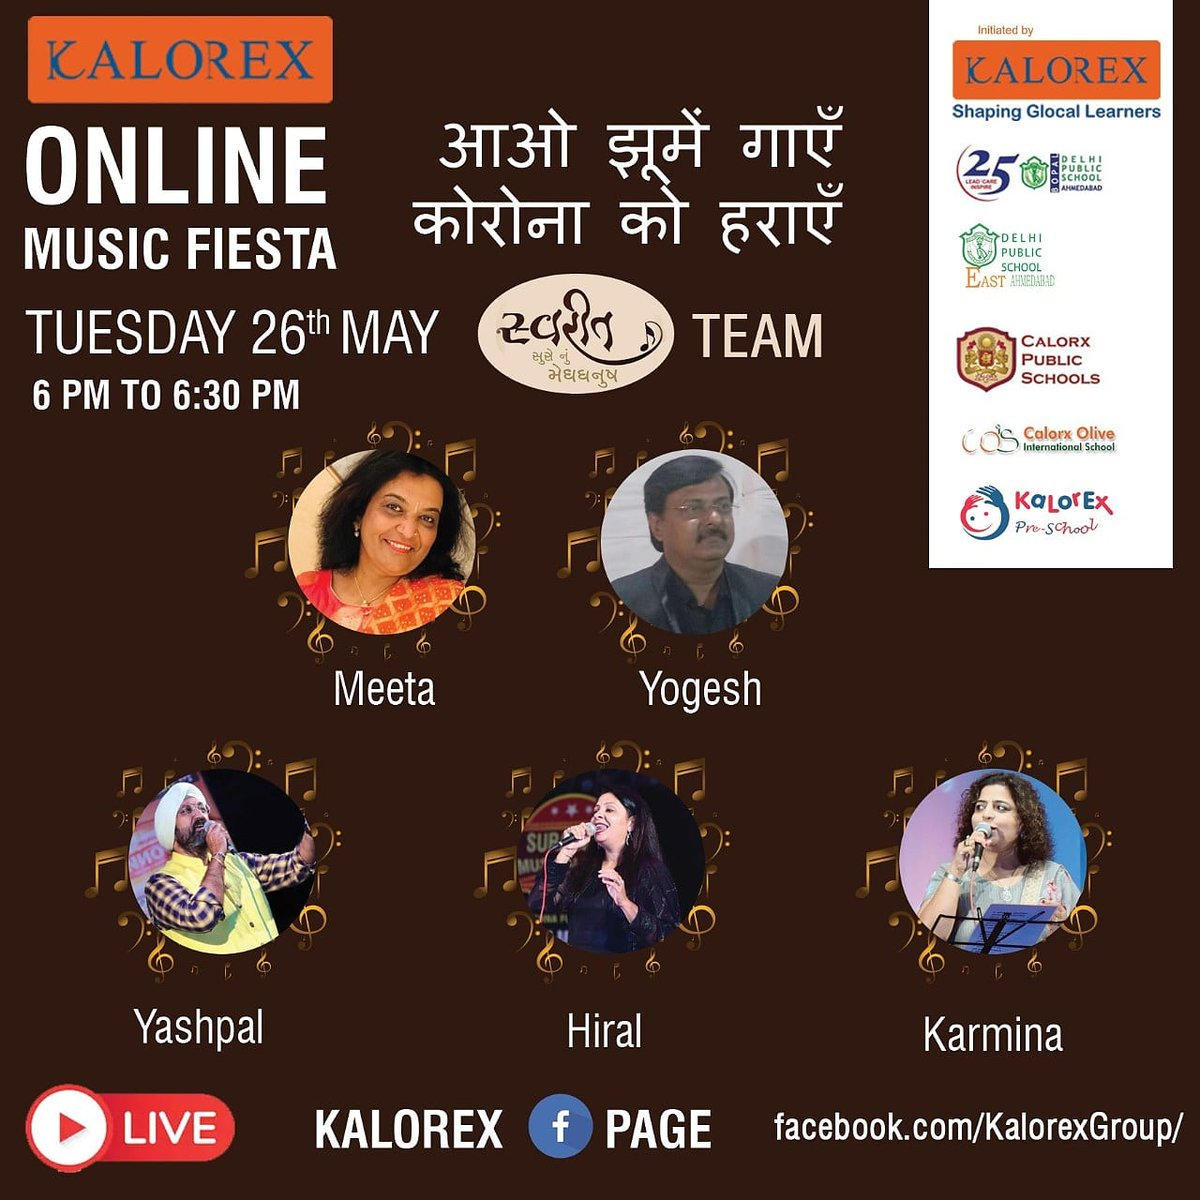 Kalorex Group is going live for Online Music Fiesta on Tuesday 26th May at 6.00 PM to 6.30 PM. Let's Stand Together by Not Standing Together With  Team Swarit , only on Kalorex Group FB Page, Stay Tune, Stay Safe & Stay at Home.  #KOMF #Kalorex https://t.co/WvxEDU7juX